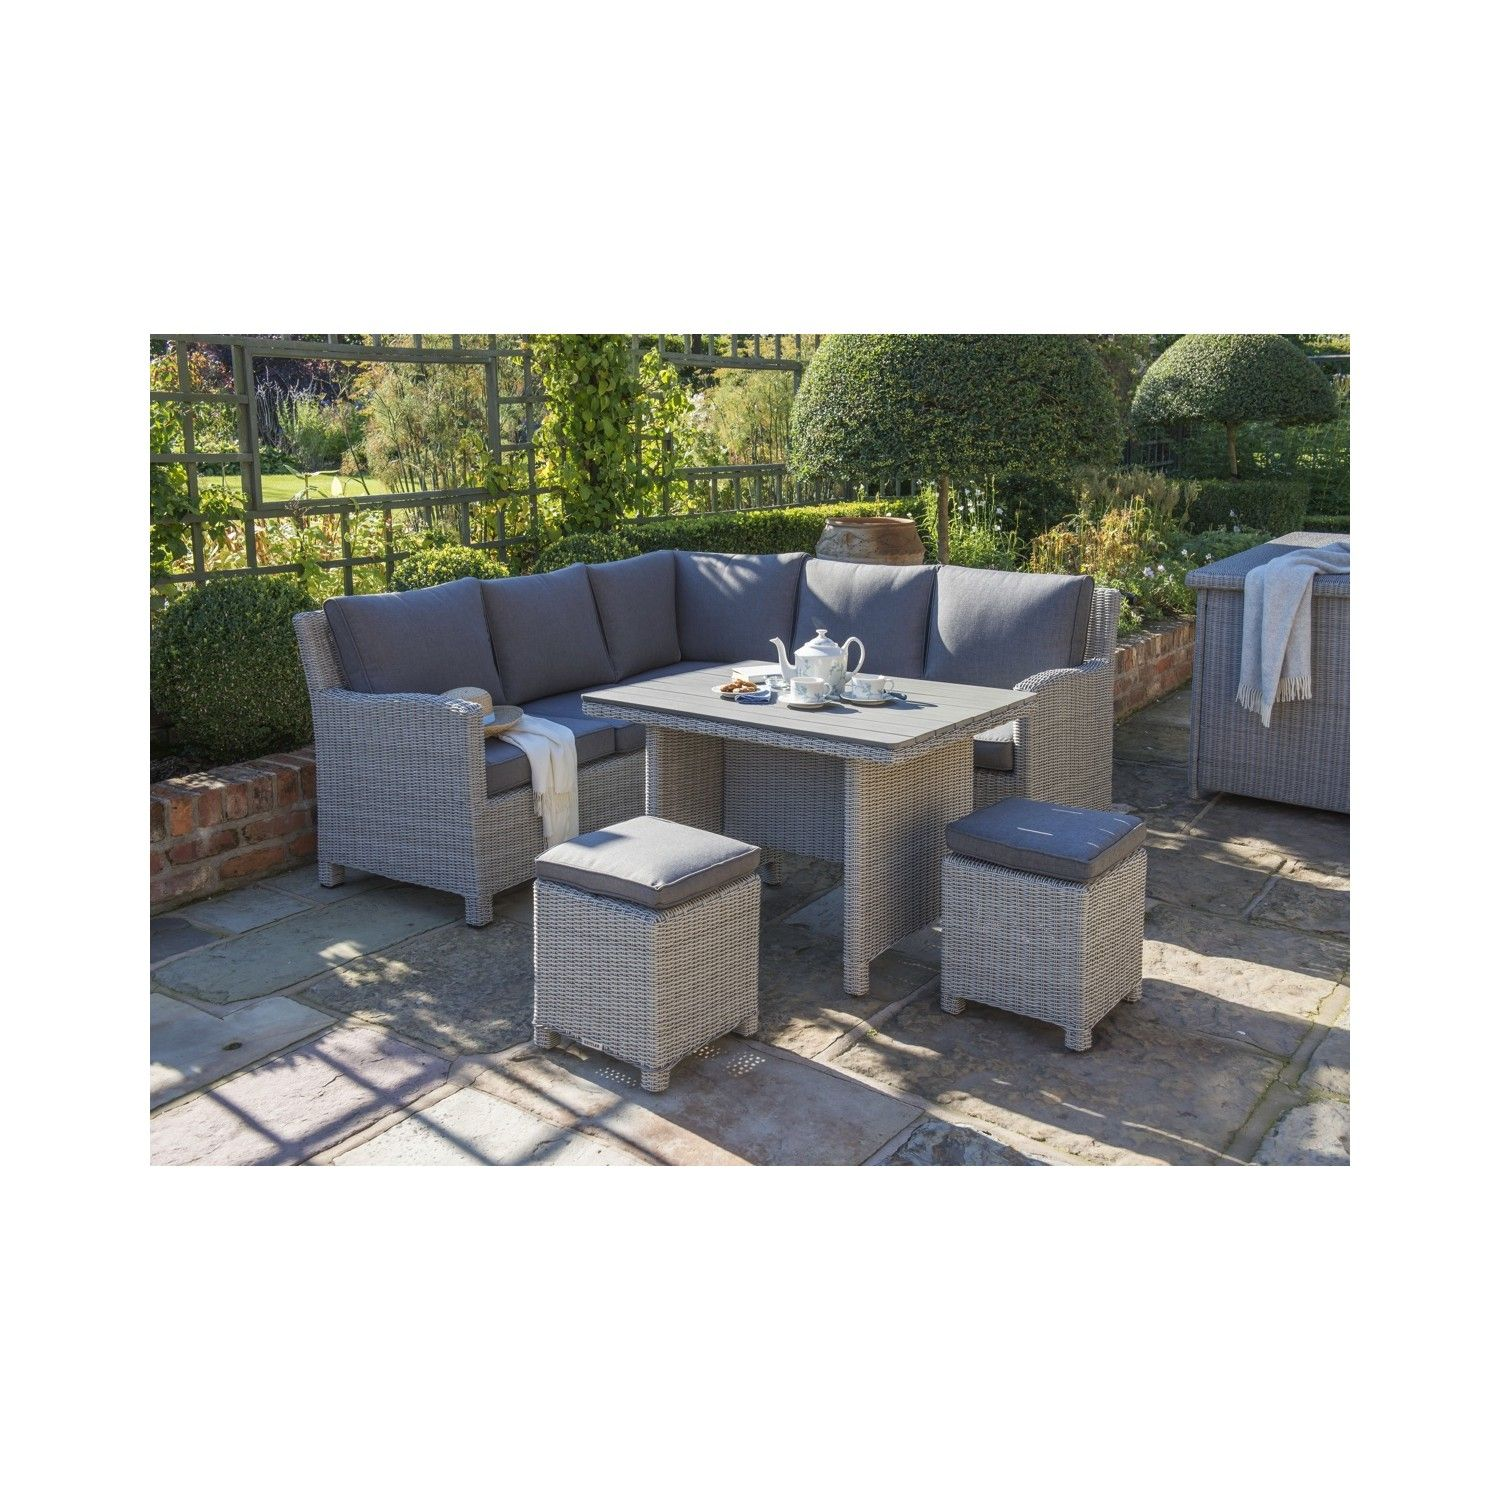 Kettler Palma Mini Corner Set Whitewash   Garden Furniture   Casual Dining. Kettler Palma Mini Corner Set Whitewash   Garden Furniture